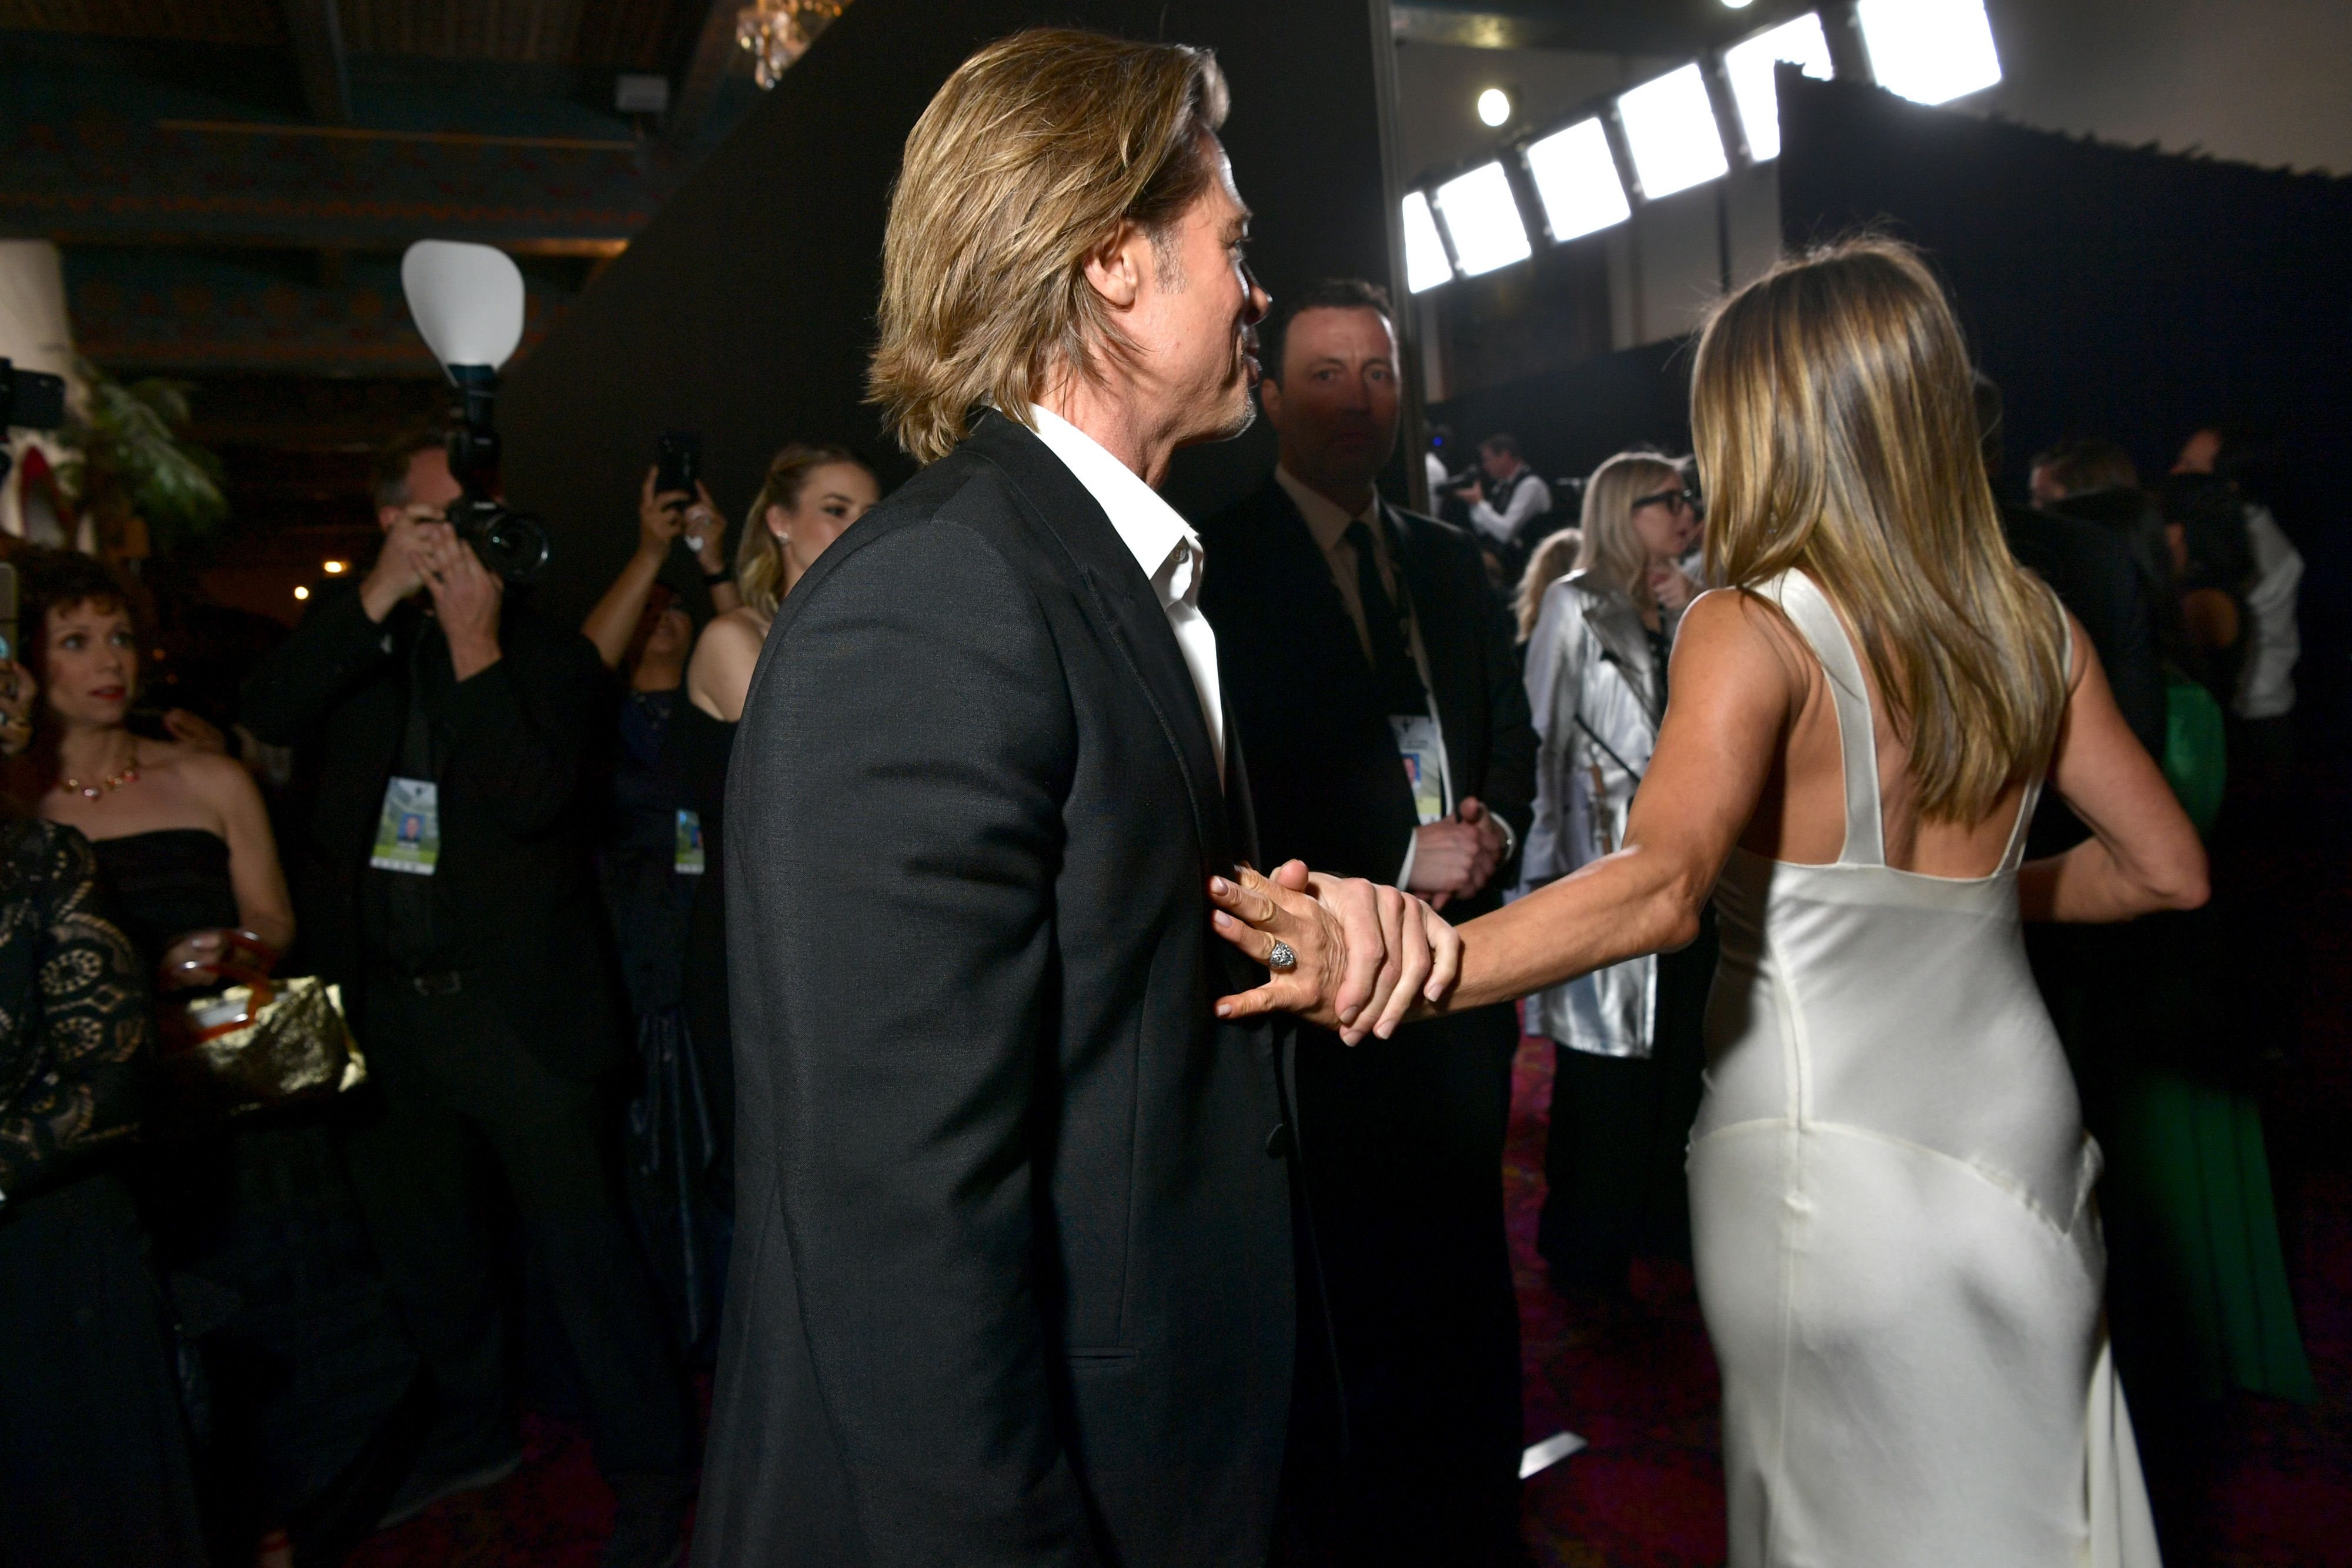 Jennifer Aniston opened up about her relationship with Brad Pitt today